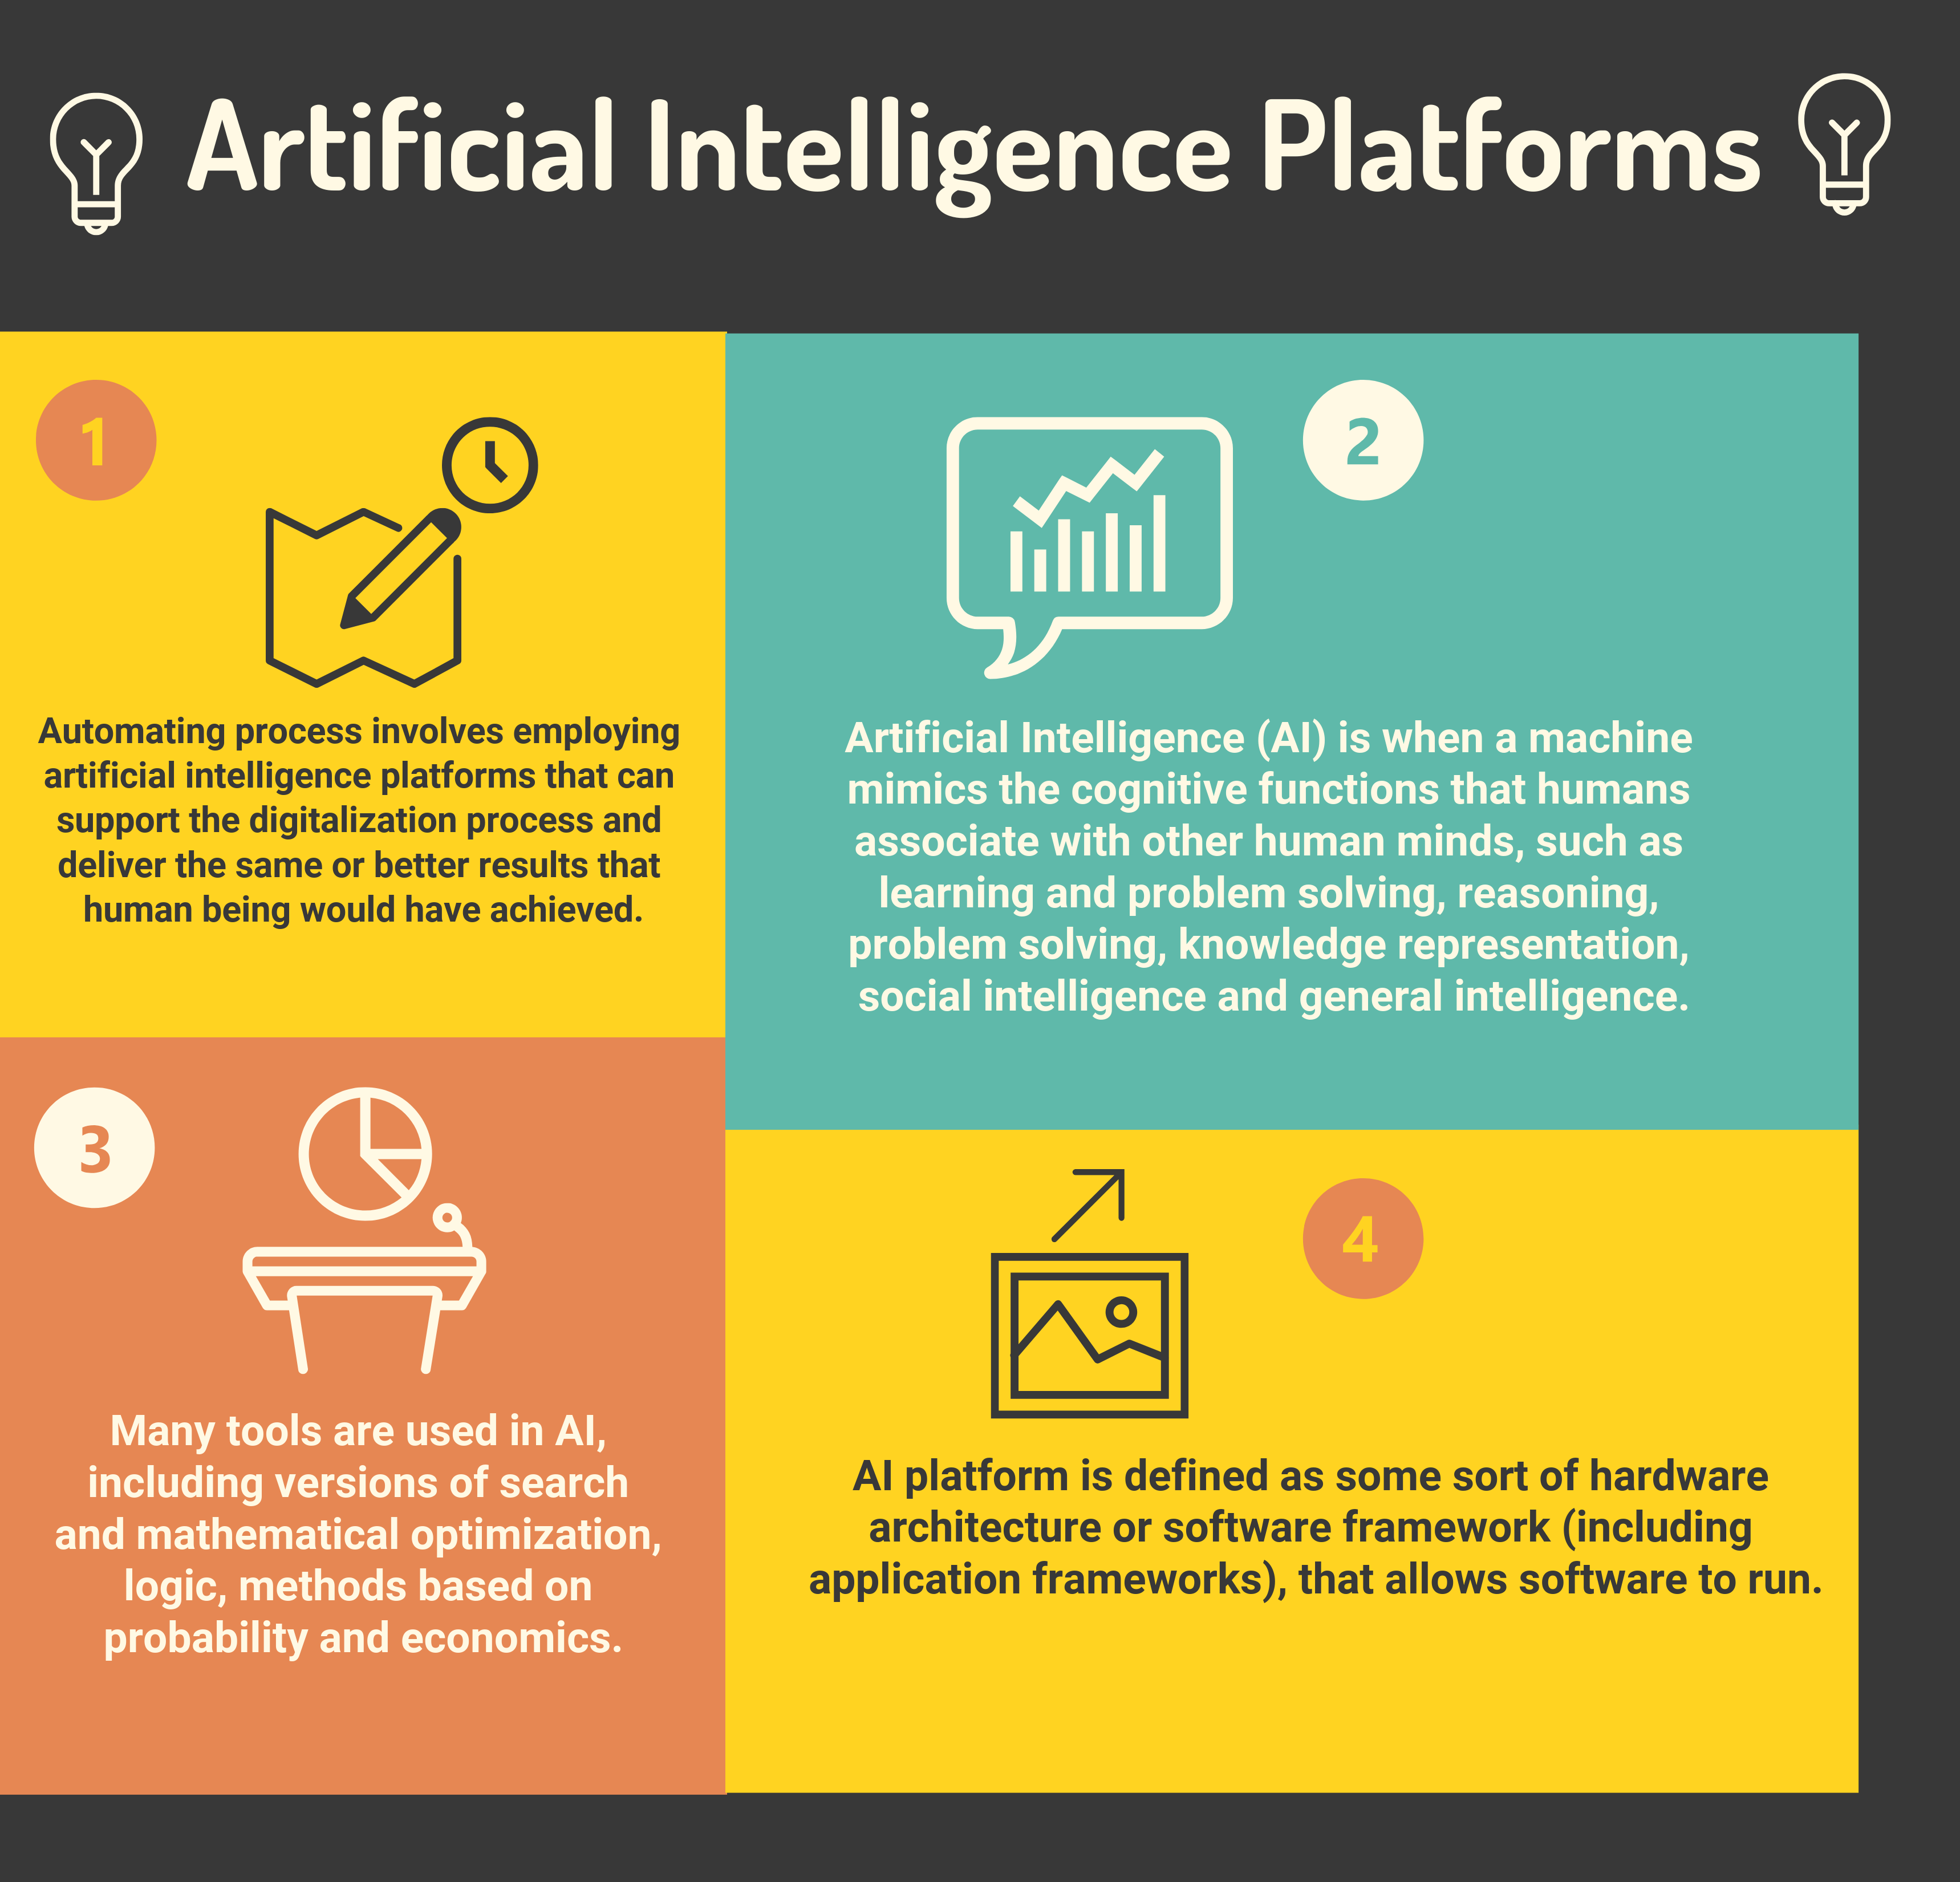 Top 18 Artificial Intelligence Platforms In 2020 Reviews Features Pricing Comparison Pat Research B2b Reviews Buying Guides Best Practices